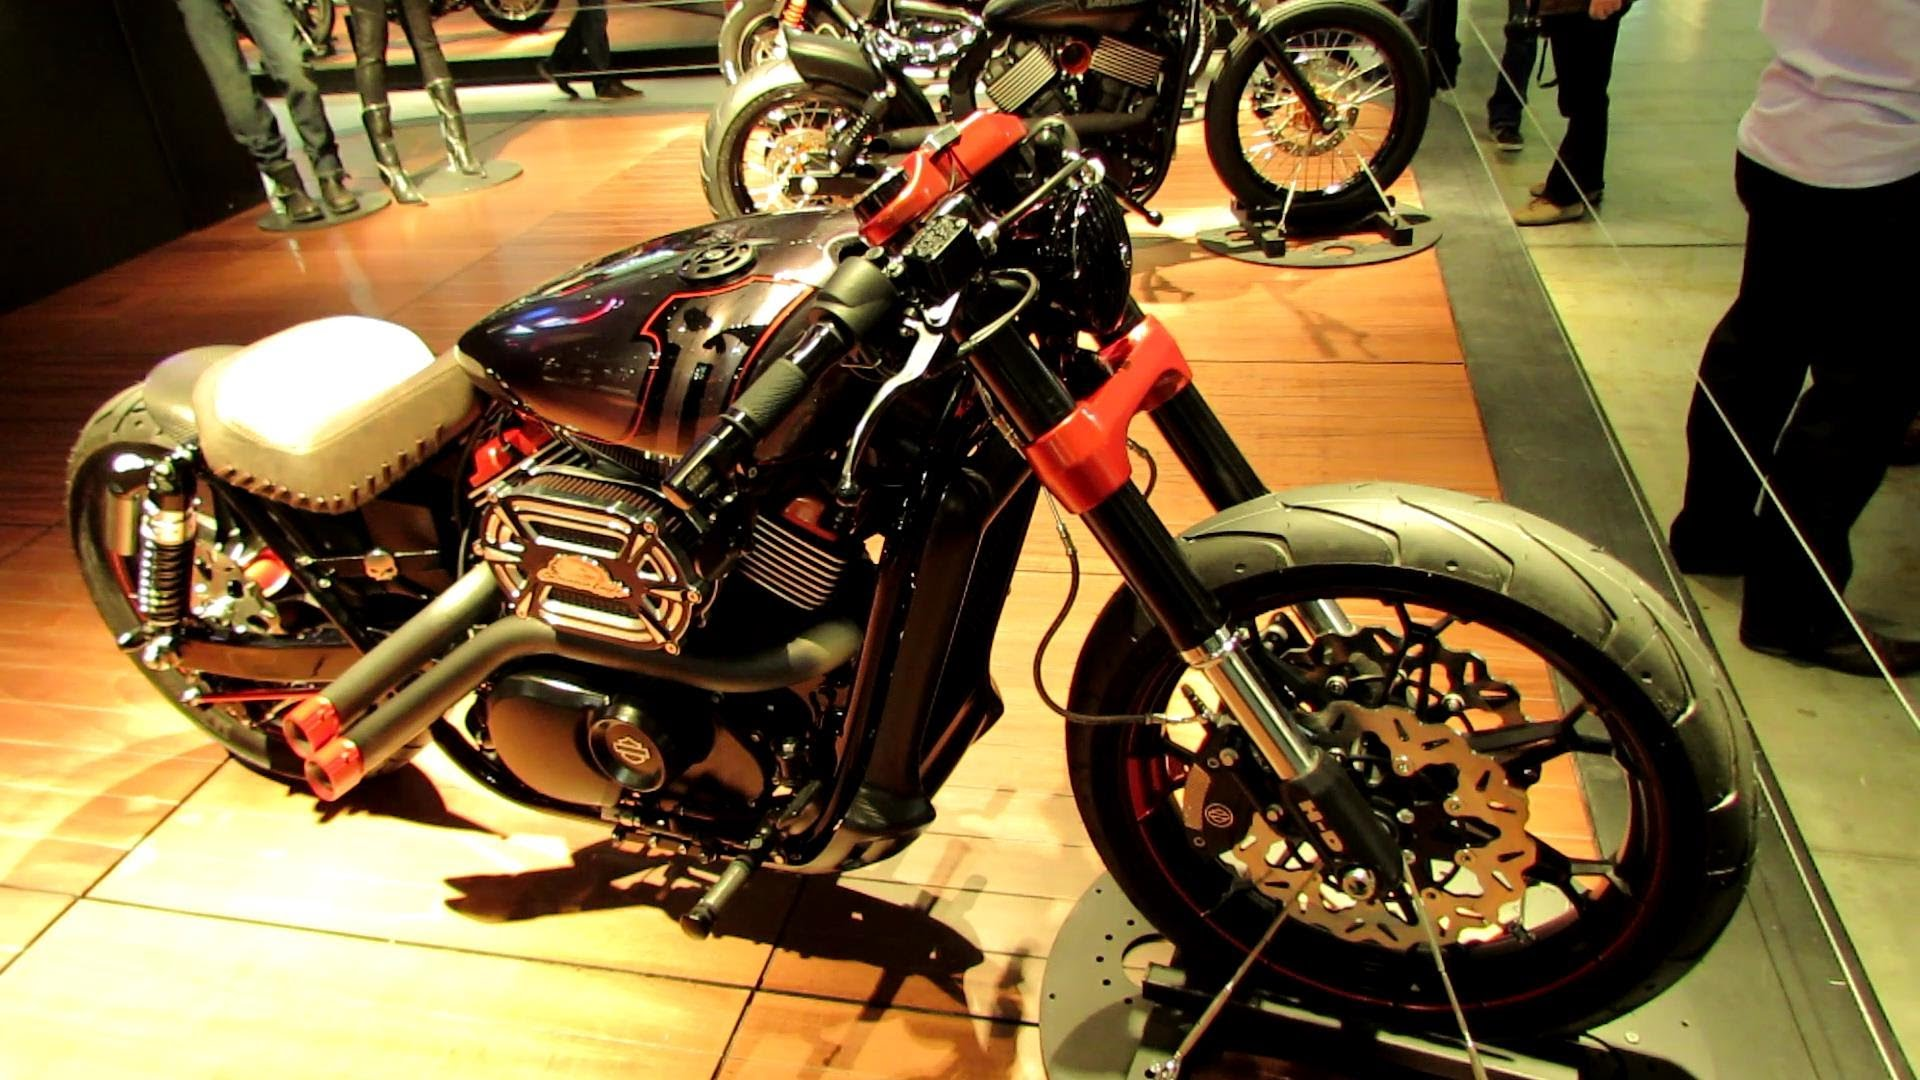 harley davidson evaluation and control process